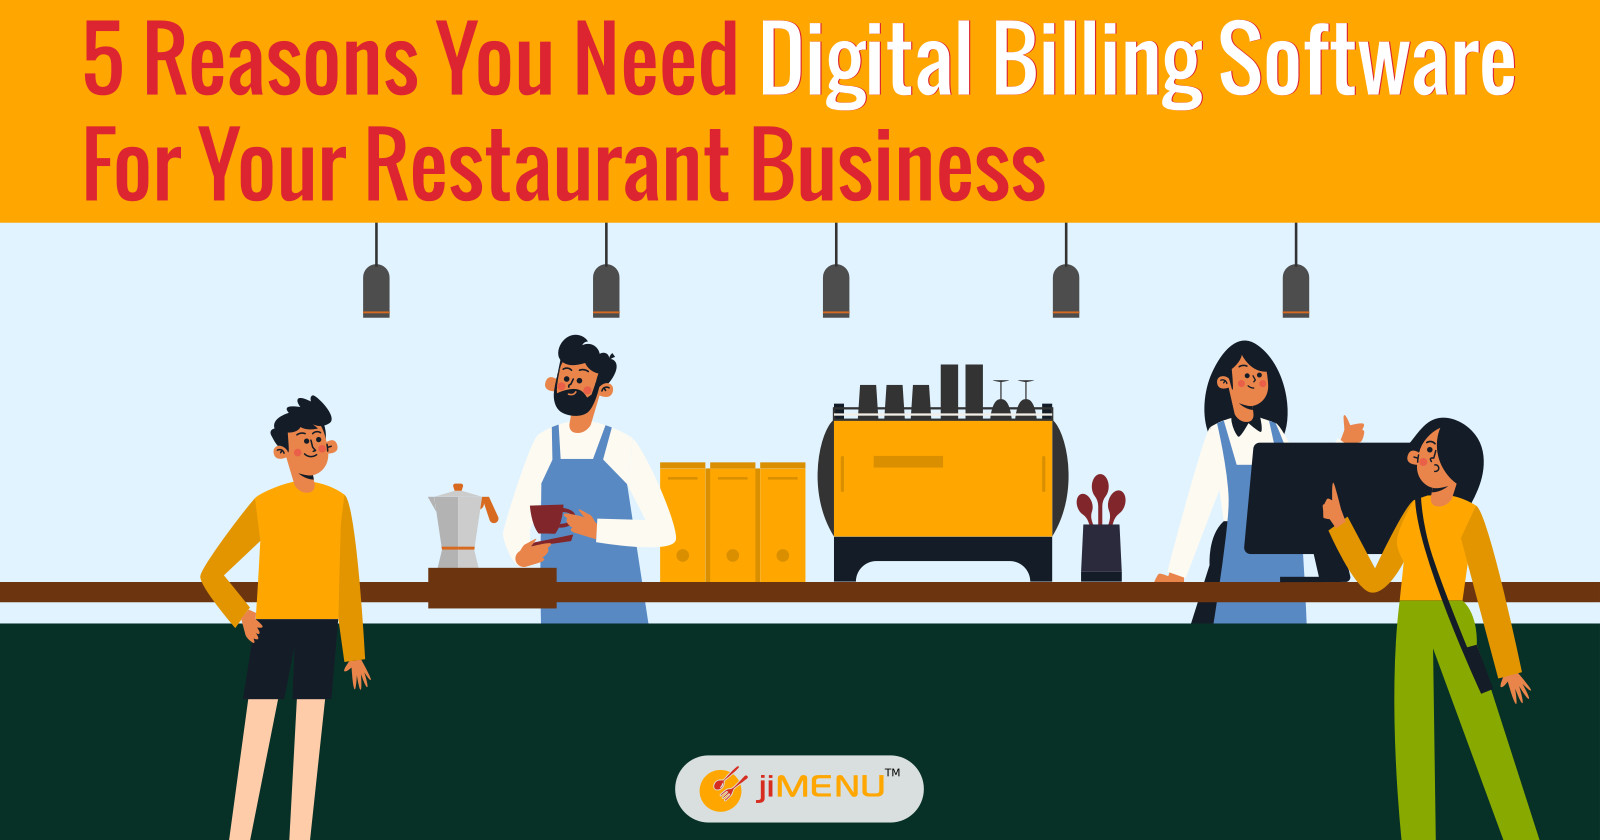 5 Reasons You Need Digital Billing Software For Your Restaurant Business